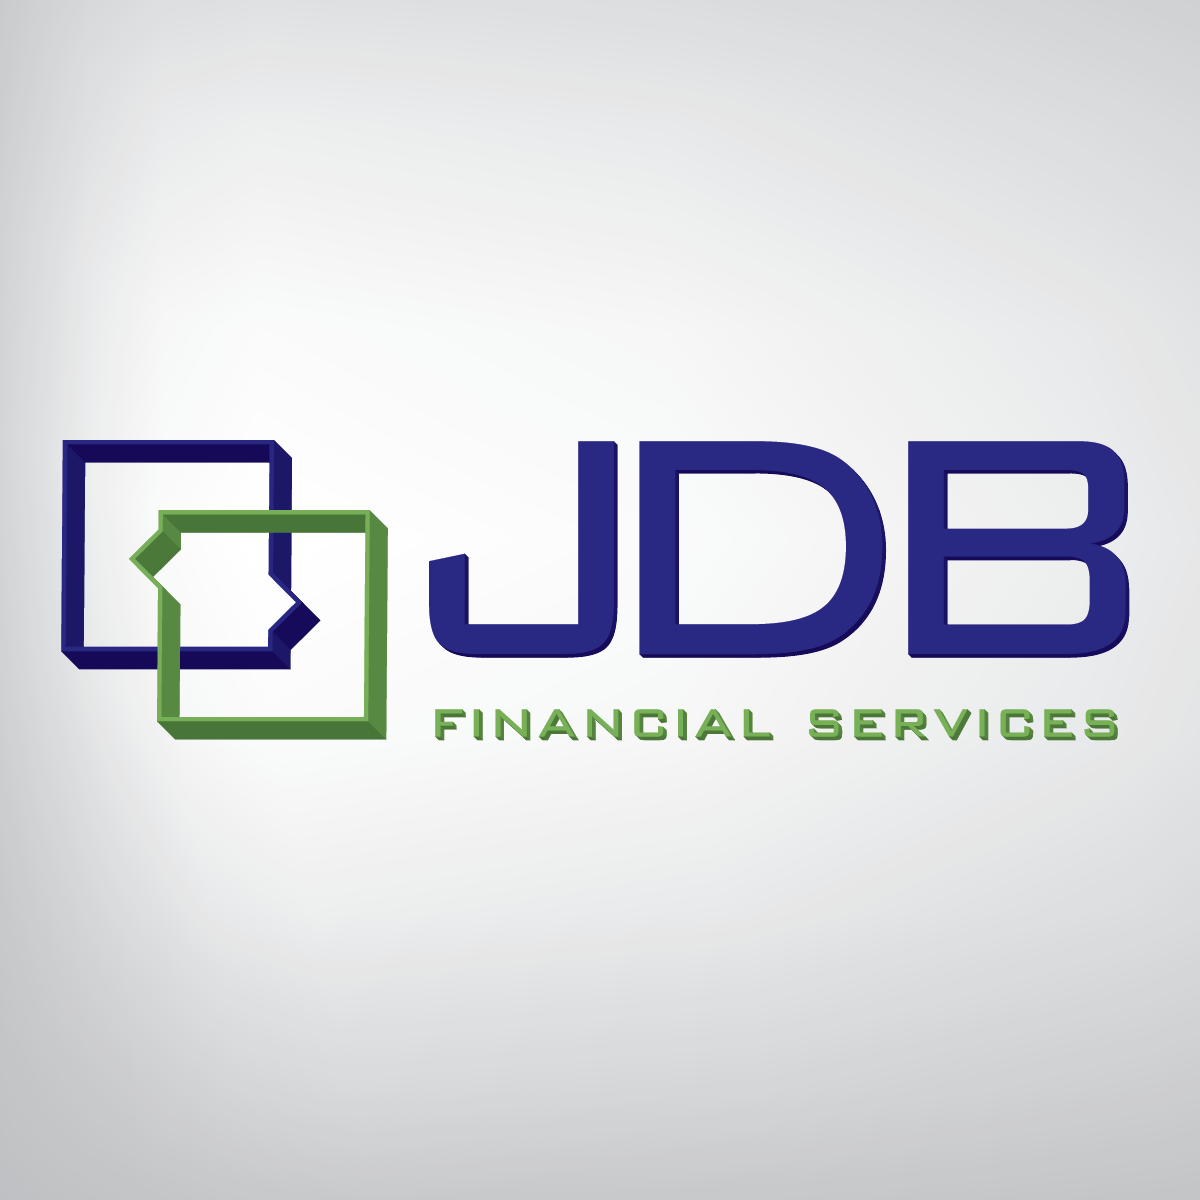 Logo Design by ISaac Law - Entry No. 36 in the Logo Design Contest Unique Logo Design Wanted for JDB Financial Services.